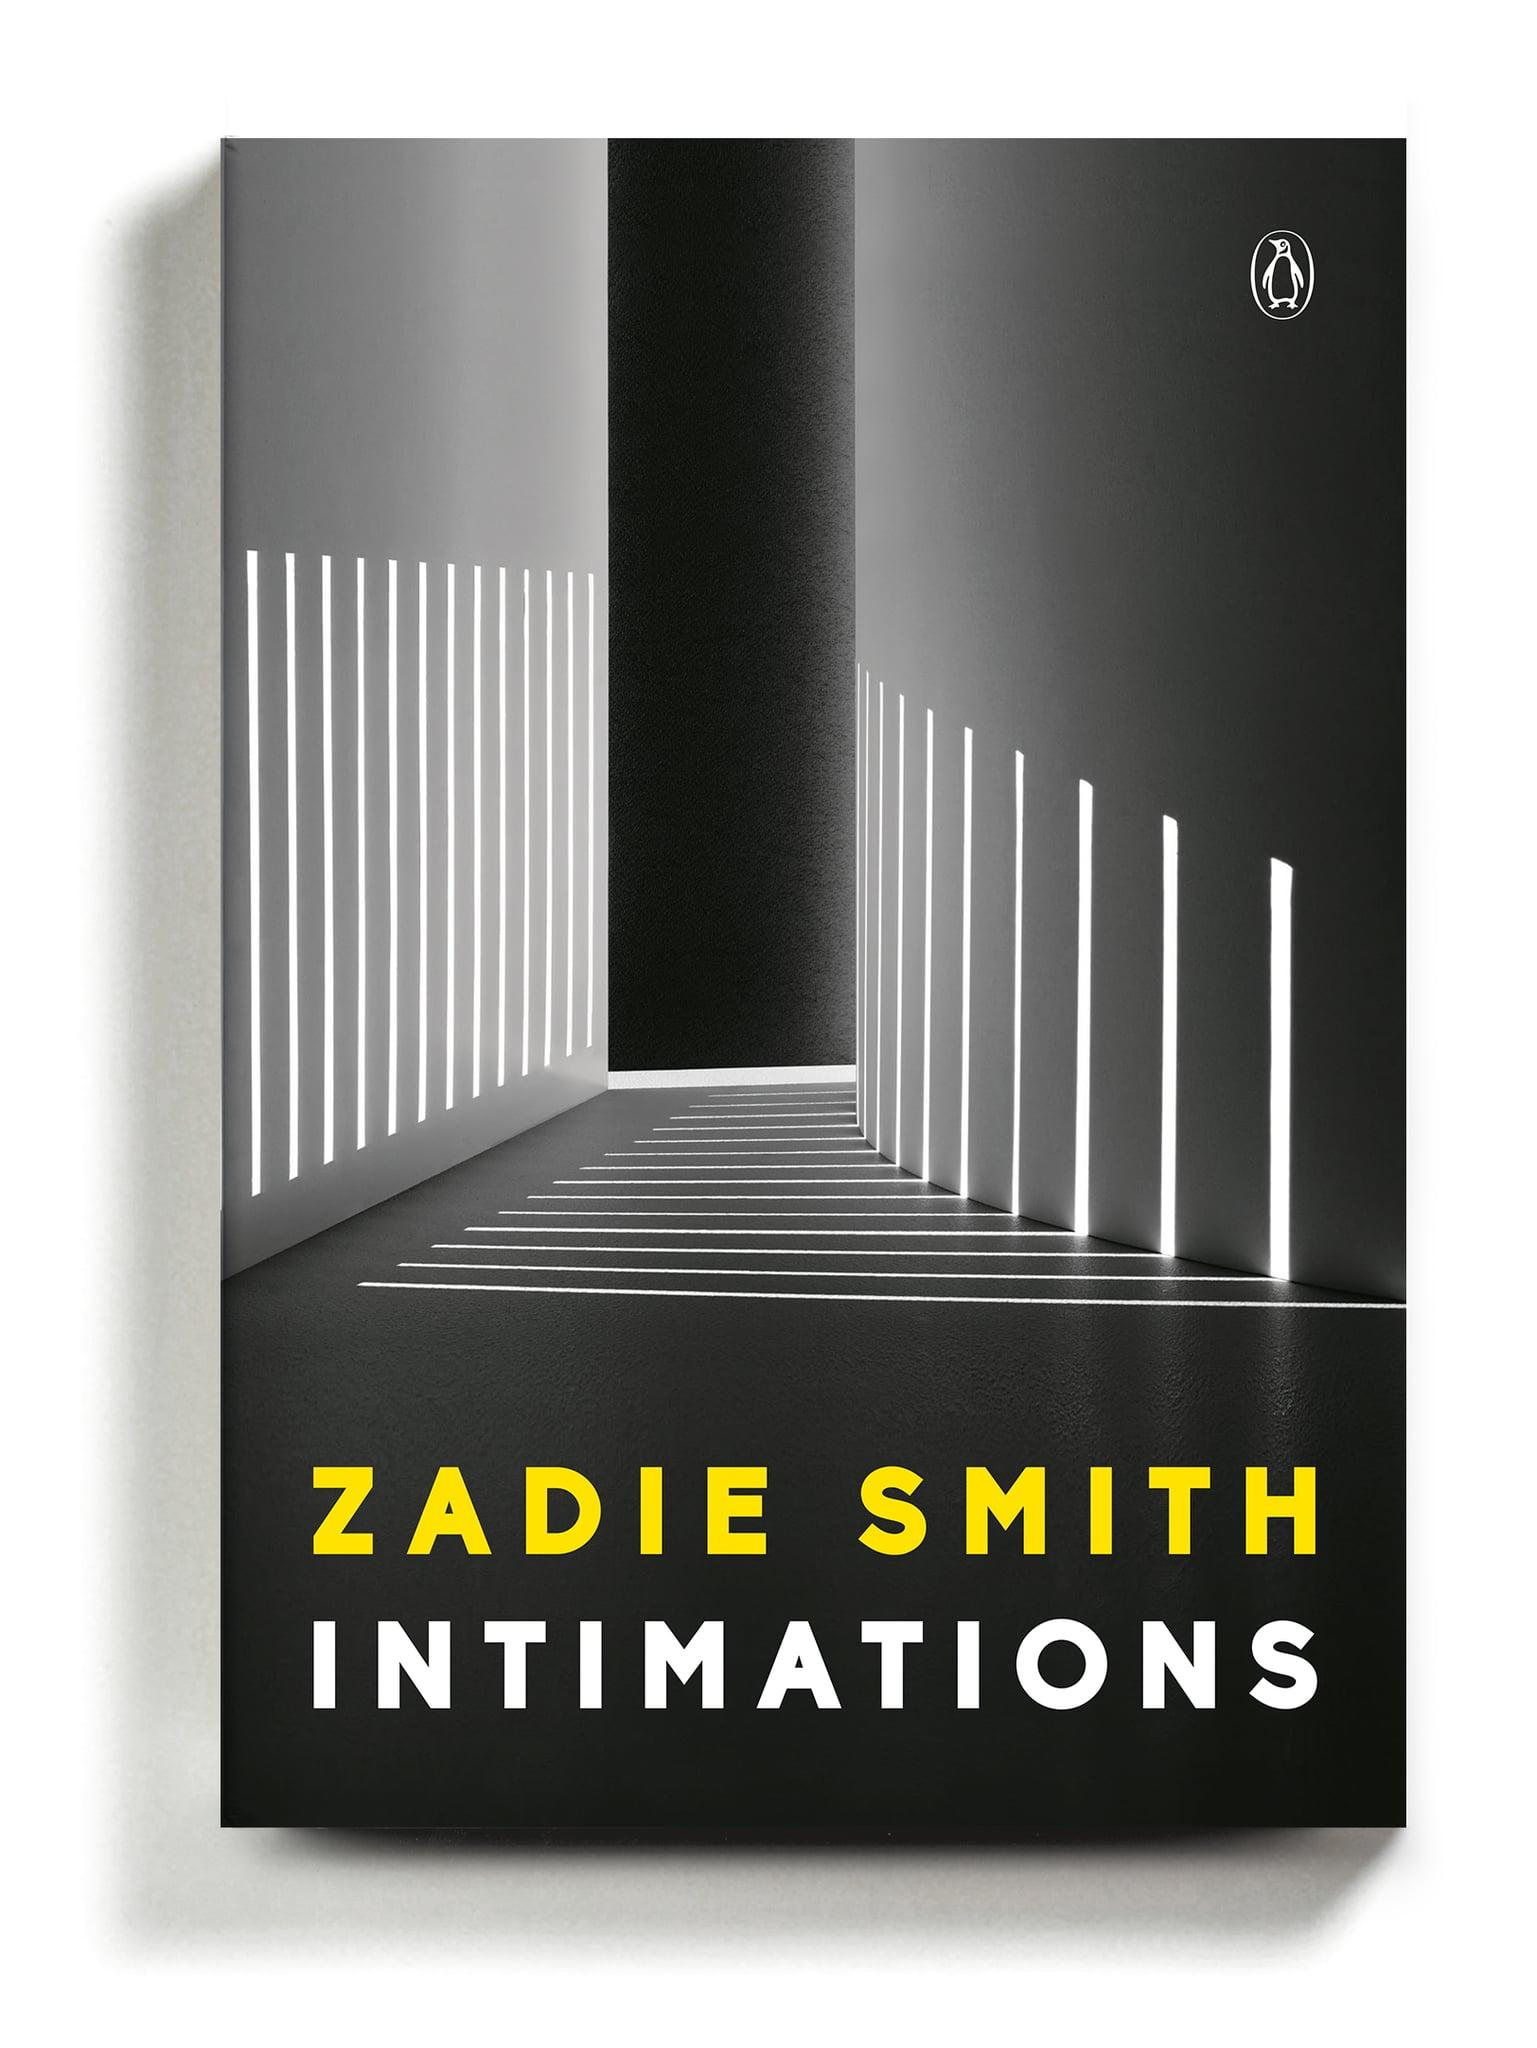 "<p>""I love reading the work of Zadie Smith, and <span>Intimations: Six Essays</span> ($10) came out at a time when the world seemed to need her voice most. These essays were written in the early days of lockdown; they are beautiful and poignant, and will stay with you long after you're finished. If you're interested in an incredibly timely selection of essays, you can't go wrong with this."" - India Yaffe, assistant editor, Shop</p>"